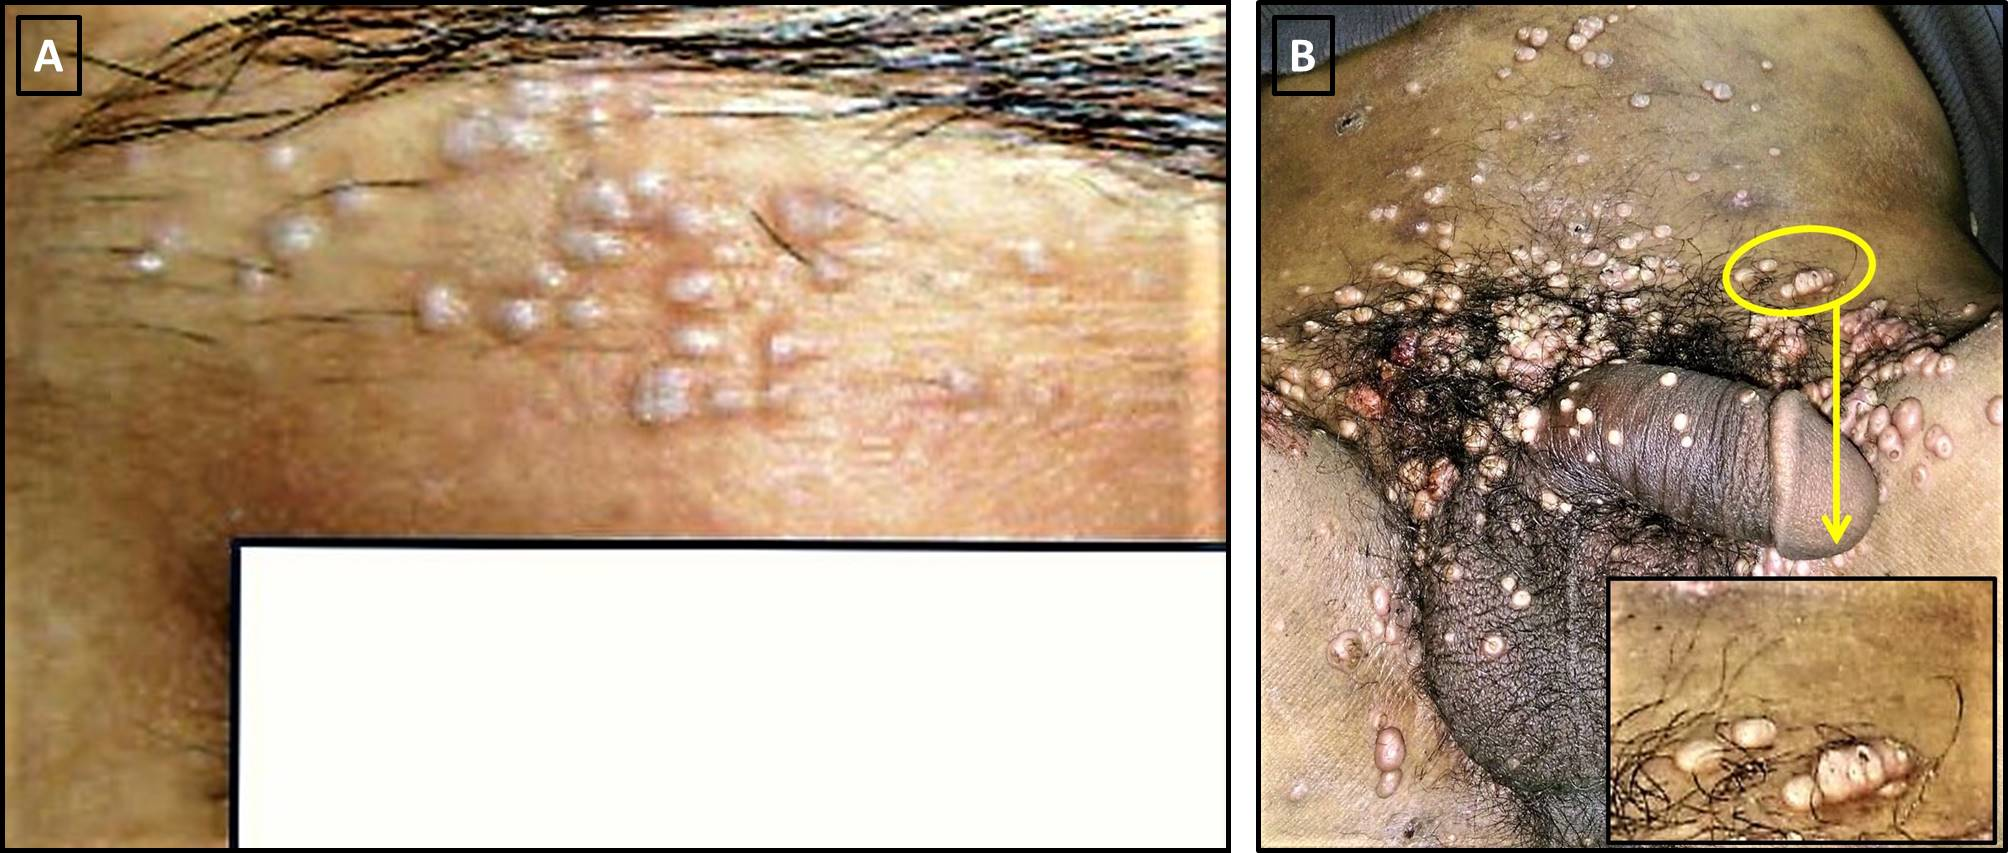 Figure 2 Pseudokoebnerization: (A) Of flat warts in the threading area of a young lady; and (B) Ofmolluscum contagiosum (MC) lesions in an immunosuppressed patient. Appreciate the florid lesions of genital MC and evidence of linear clusters at multiple places. One area (yellow circle) has been magnified in the inset for better appreciation. visible as clustered papules (black circle). In these cases, micro-inoculation or seeding of the viral particles is responsible for this kind of Koebner phenomenon.